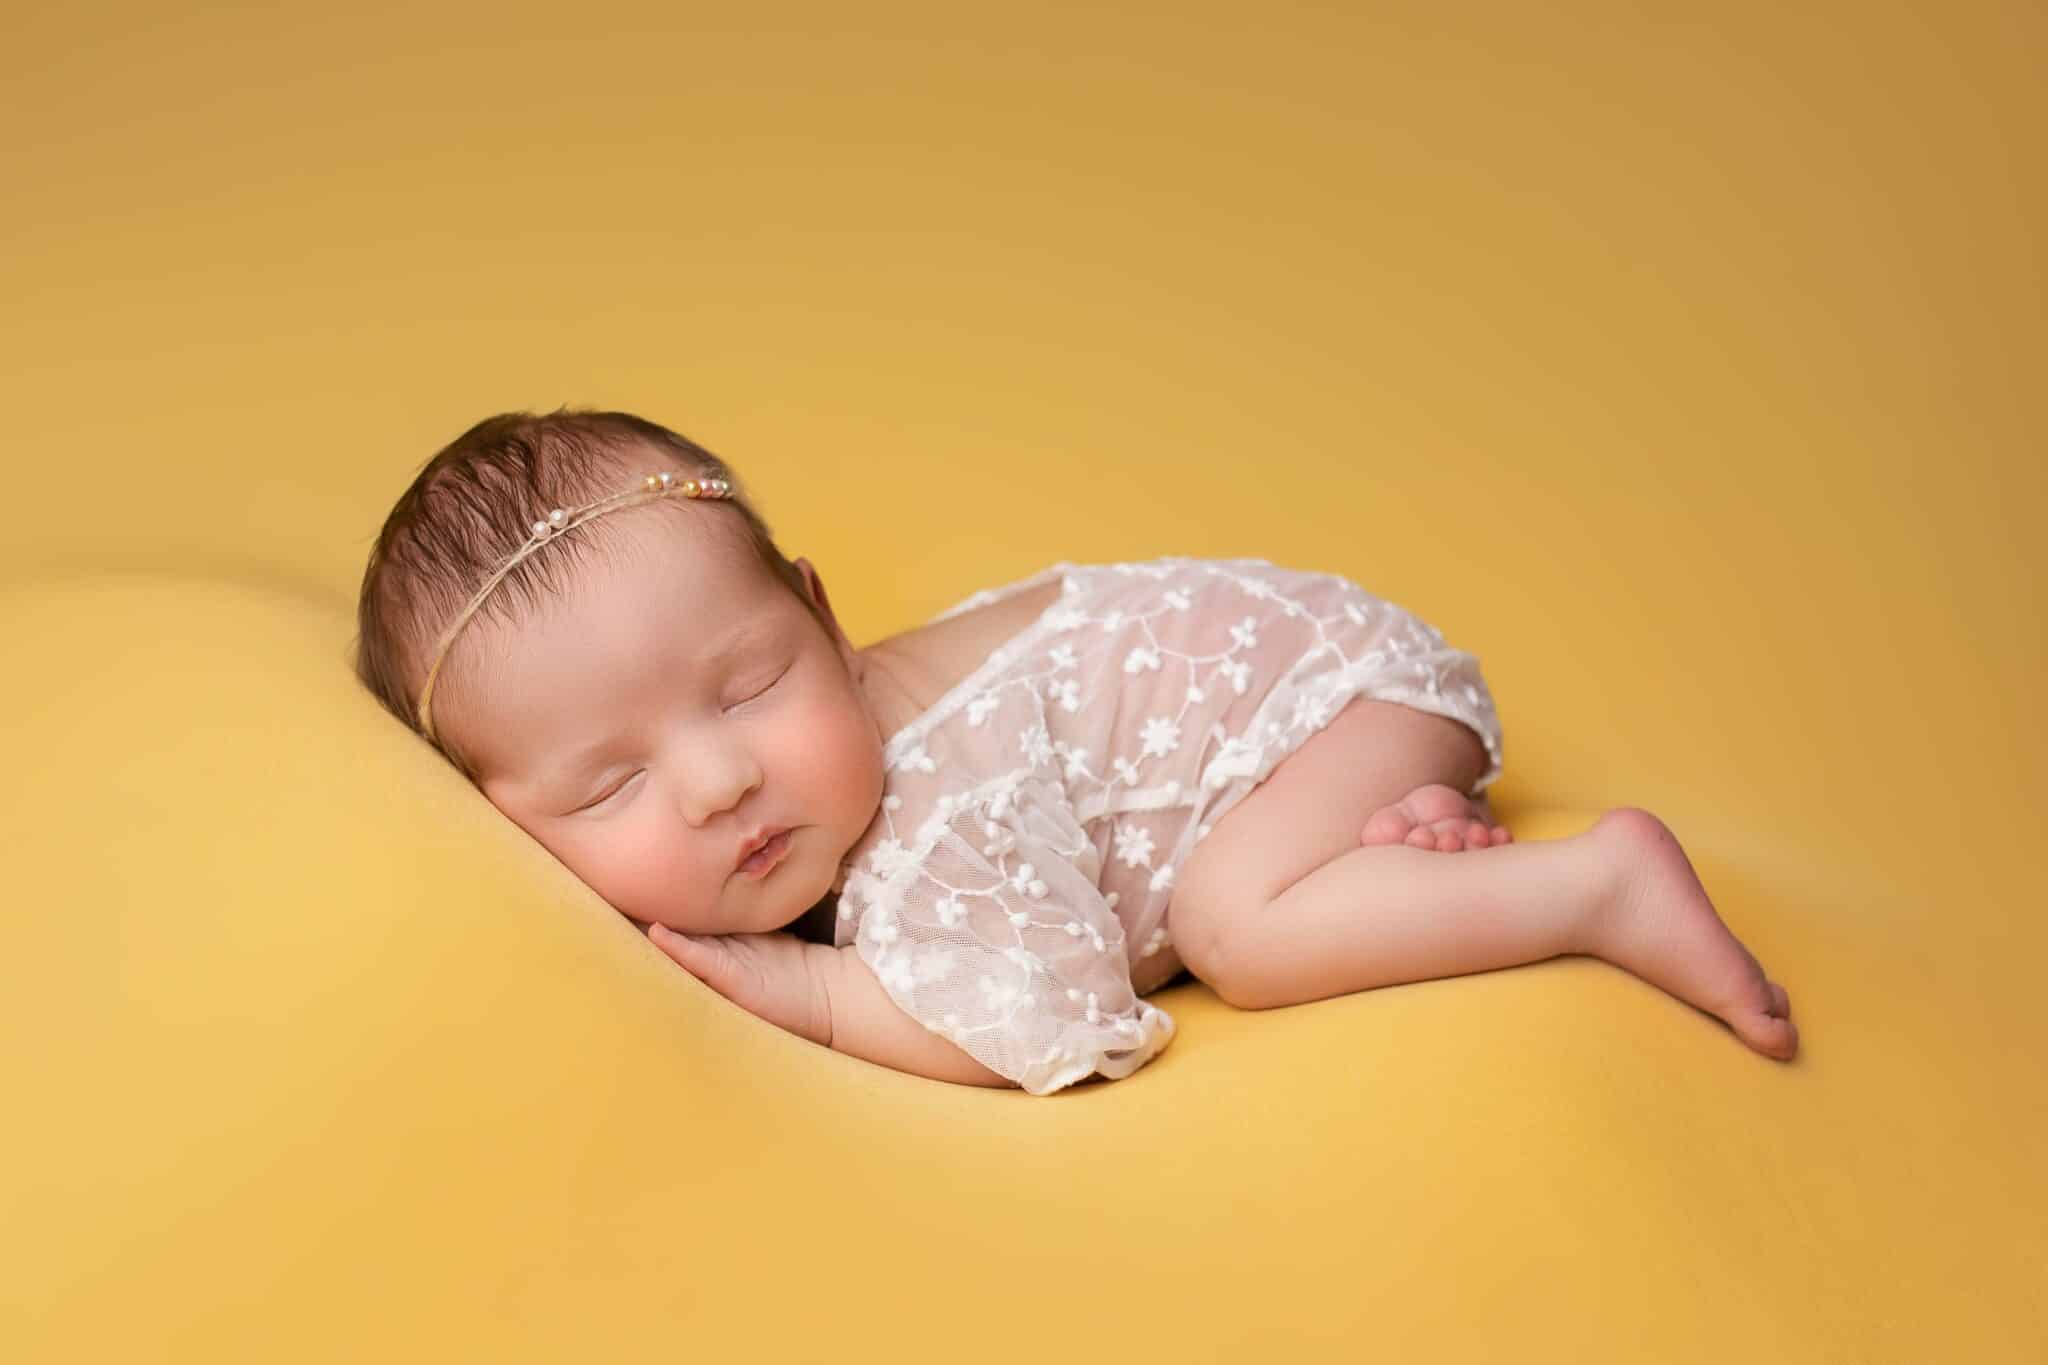 Baby girl sleeping on yellow blanket while wearing a cream lace romper.